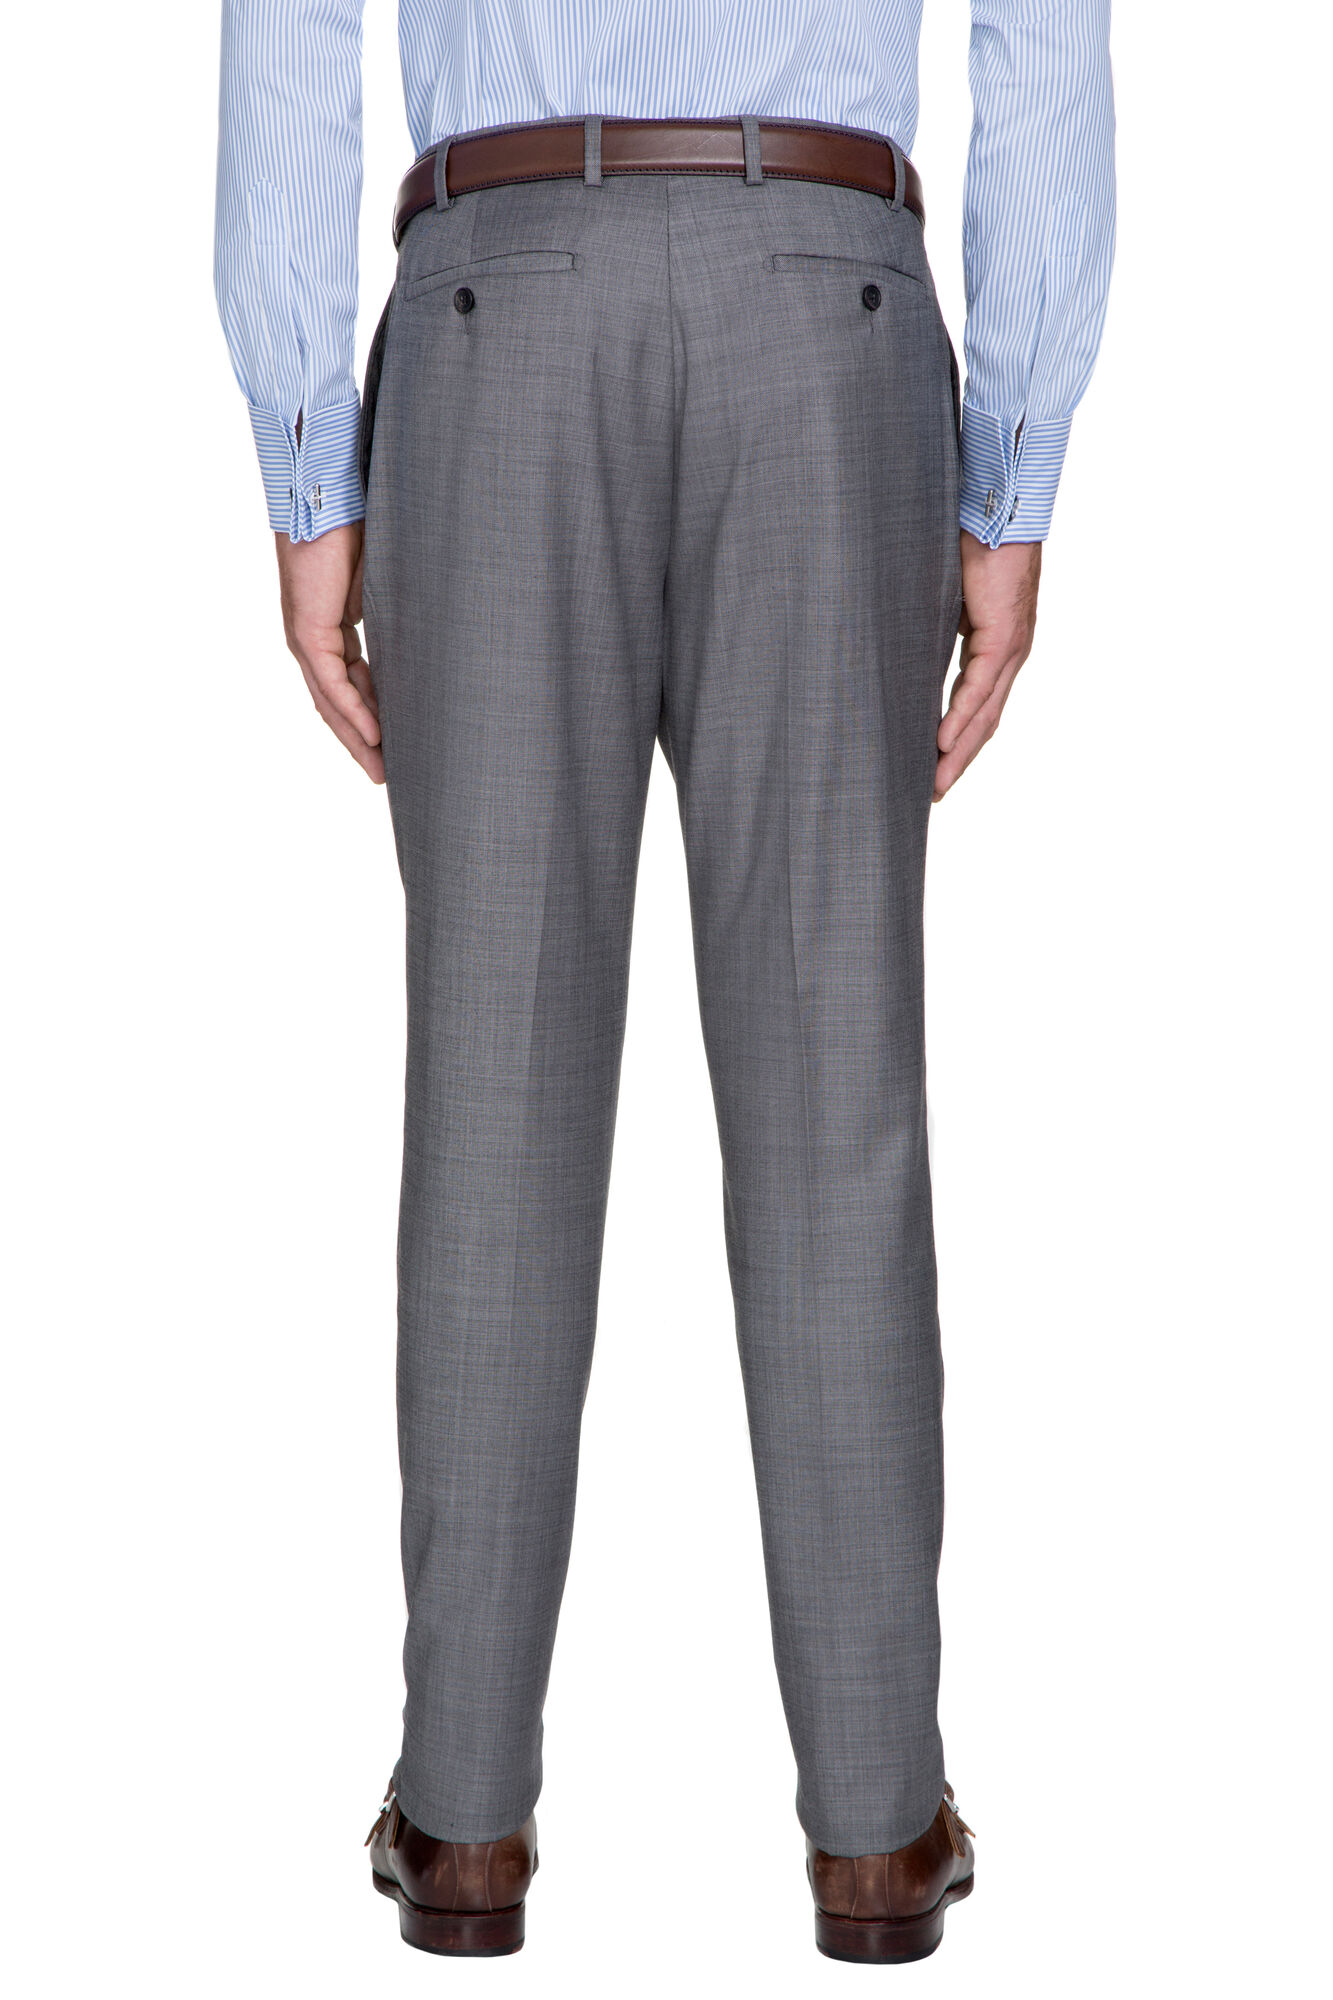 Find light gray women trousers at ShopStyle. Shop the latest collection of light gray women trousers from the most popular stores - all in one place.